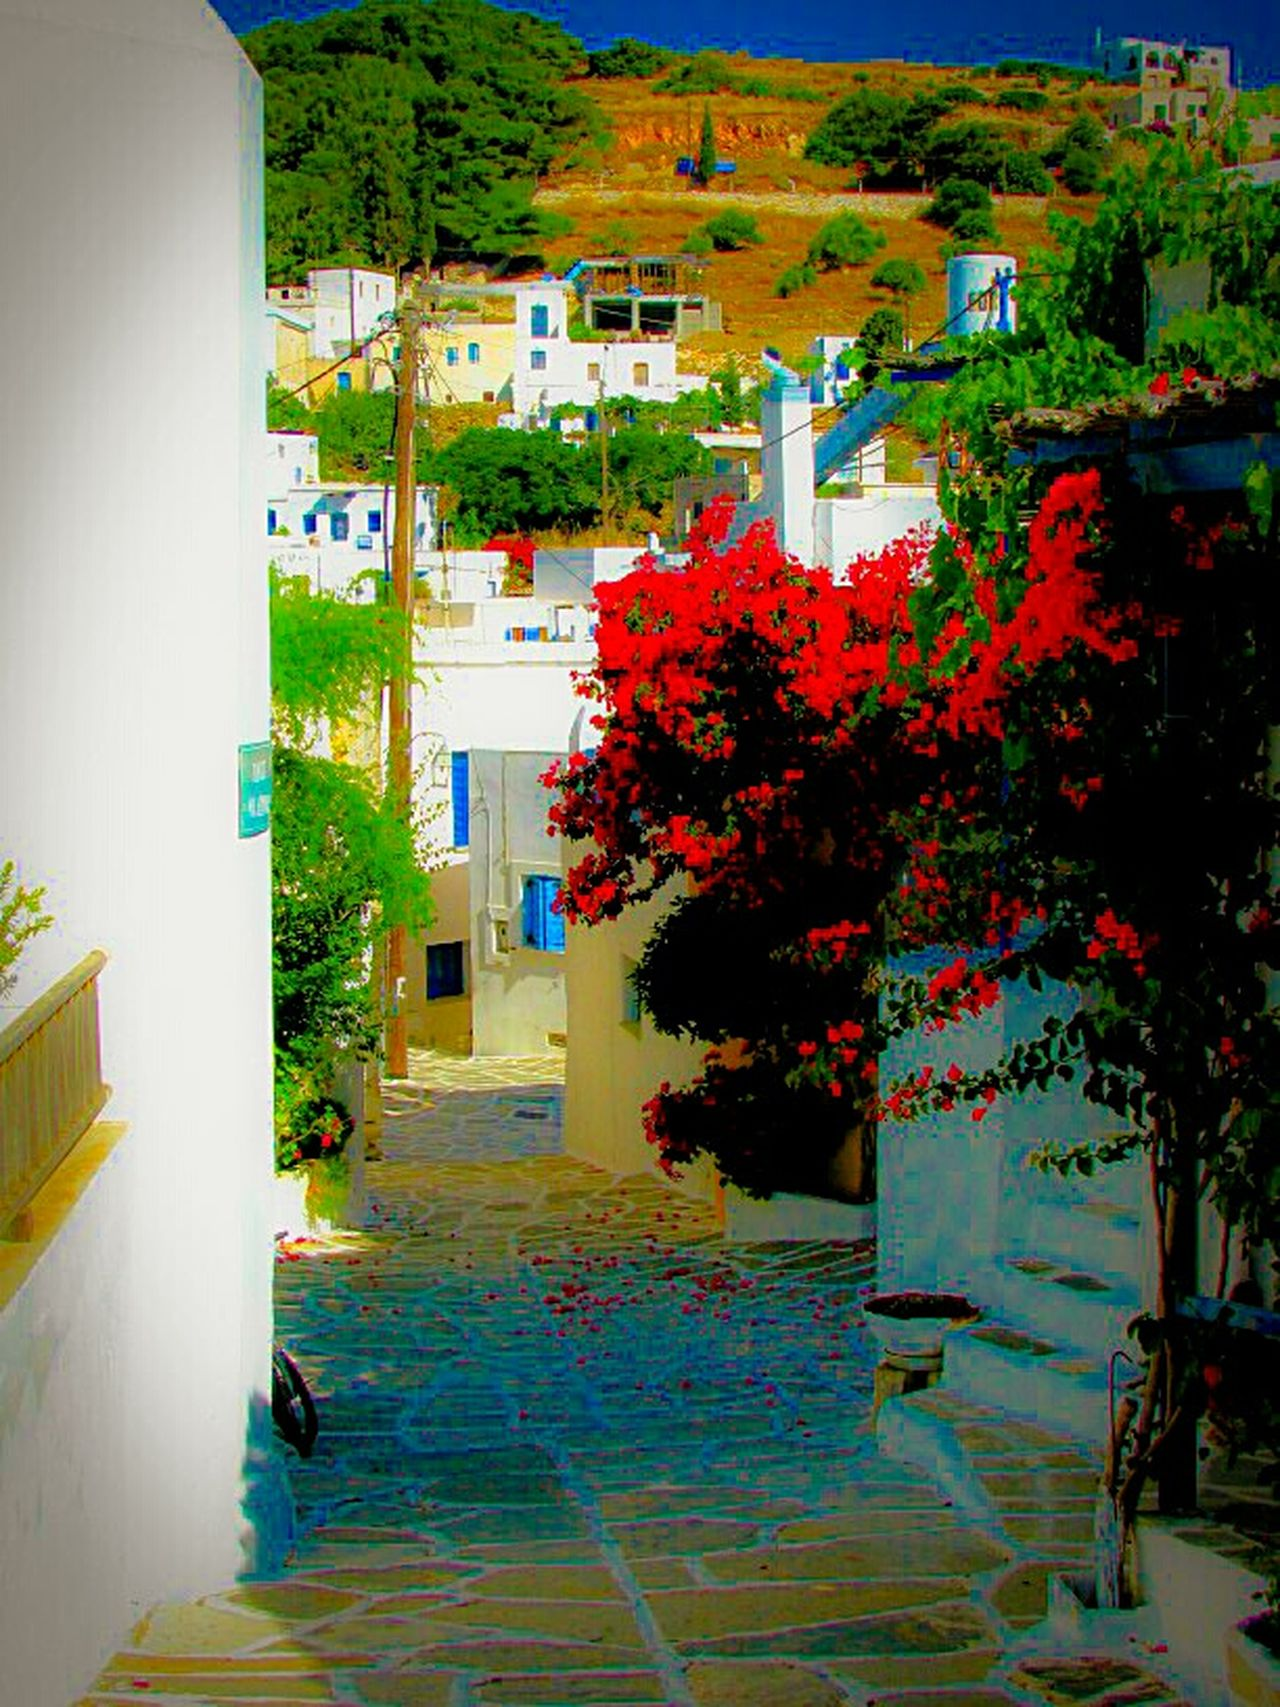 Q Quiet Places Alley Village Houses Bougainvillea Greek Islands No People Summer Memories 🌄 Summer Views Yeah Springtime! Nature On Your Doorstep Nature Human Vs Nature Paros Island Showcase March Shades Of Red Red Flowers Lefkes Stairs Best Of Stairways Urban Spring Fever Blossom Blooming